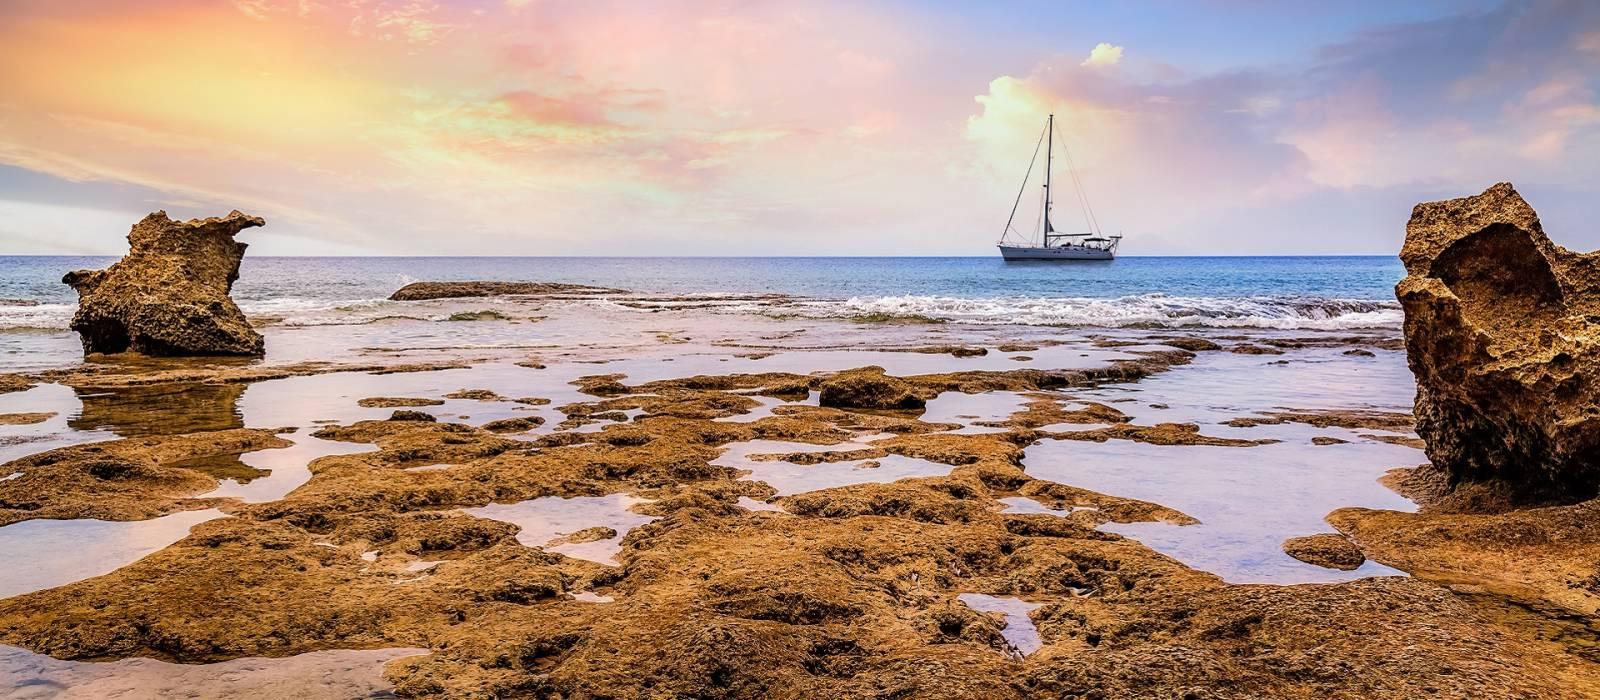 Beach sunset at Neil island Andaman India with naturals rocks and corals and sailing vessel at the horizon